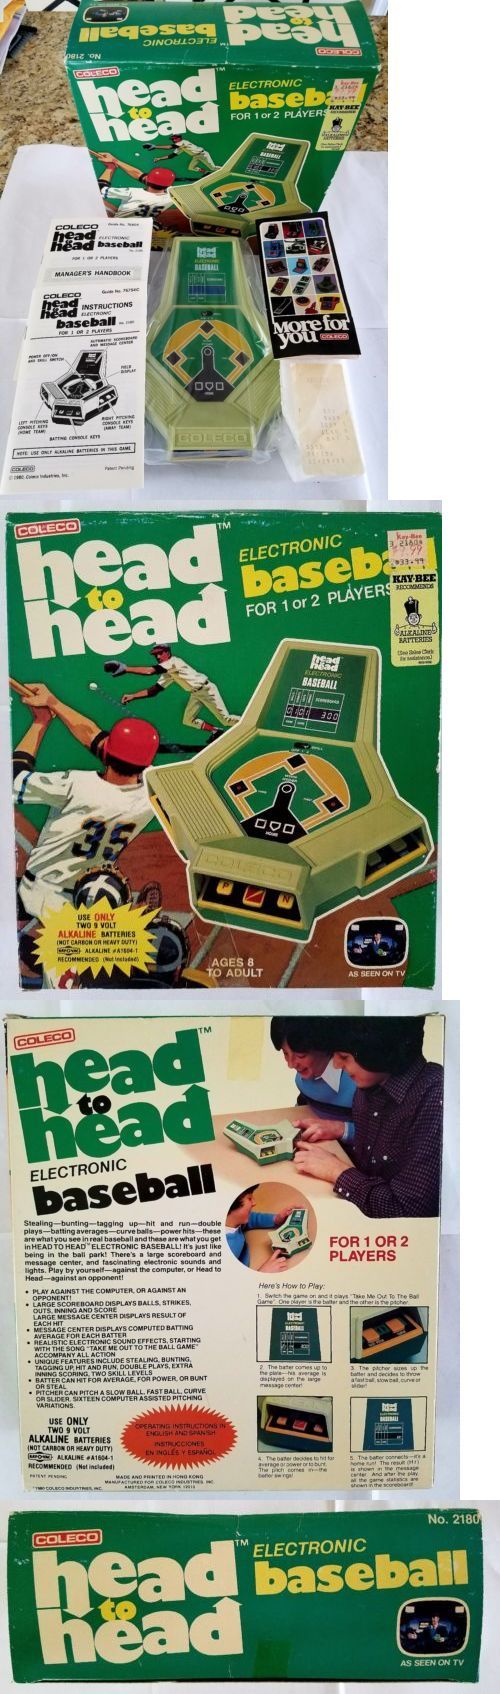 Electronic Games 2540: Vintage Coleco Head To Head Electronic Baseball Handheld Video Game - New In Box -> BUY IT NOW ONLY: $150 on eBay!